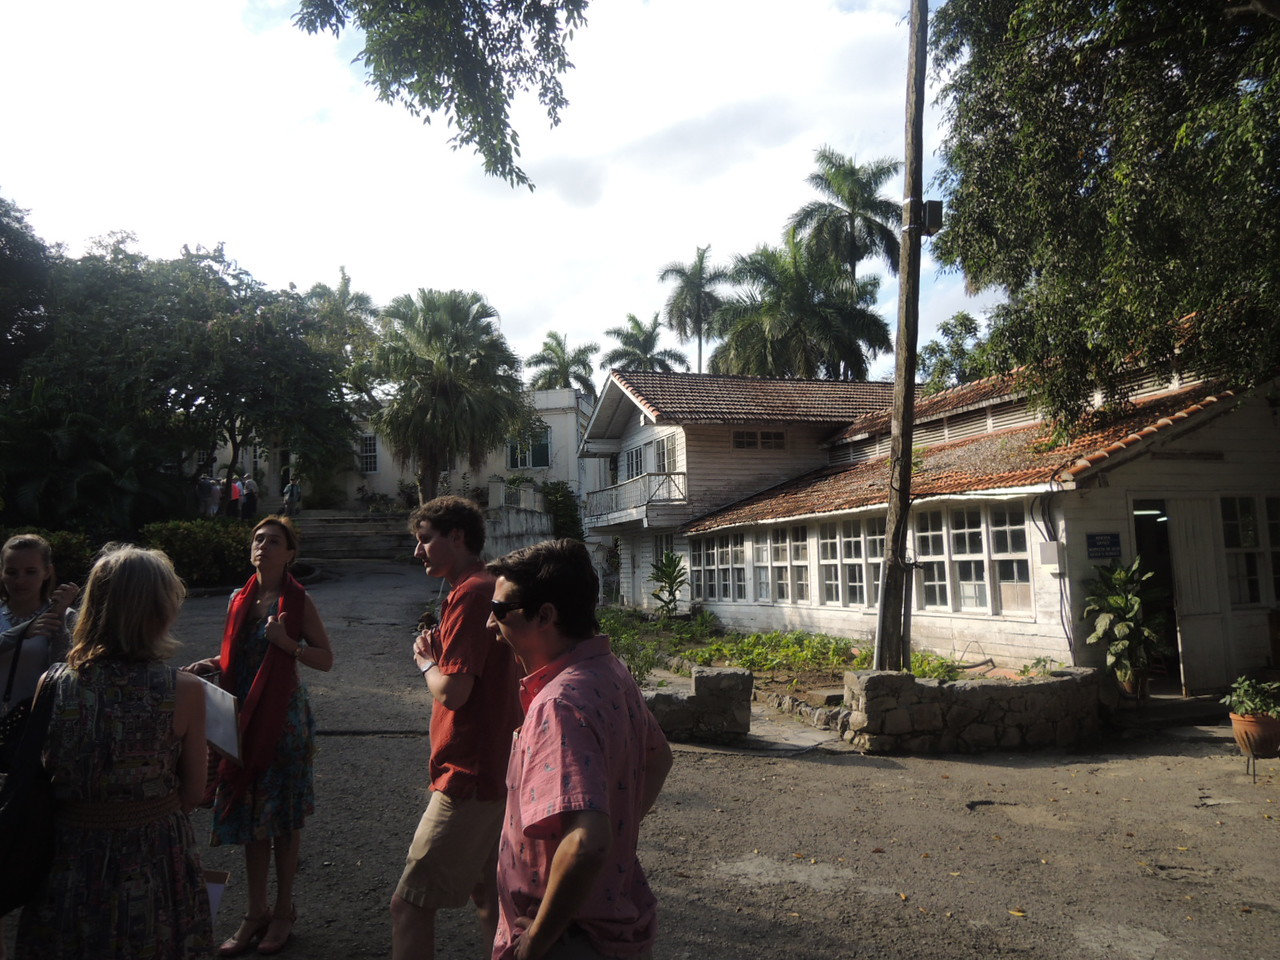 Here we are at Ernest Hemingway's farm.  He bought it in the late 1930's and wrote some of his novels here.  He gave it to the Cuban people after the revolution.